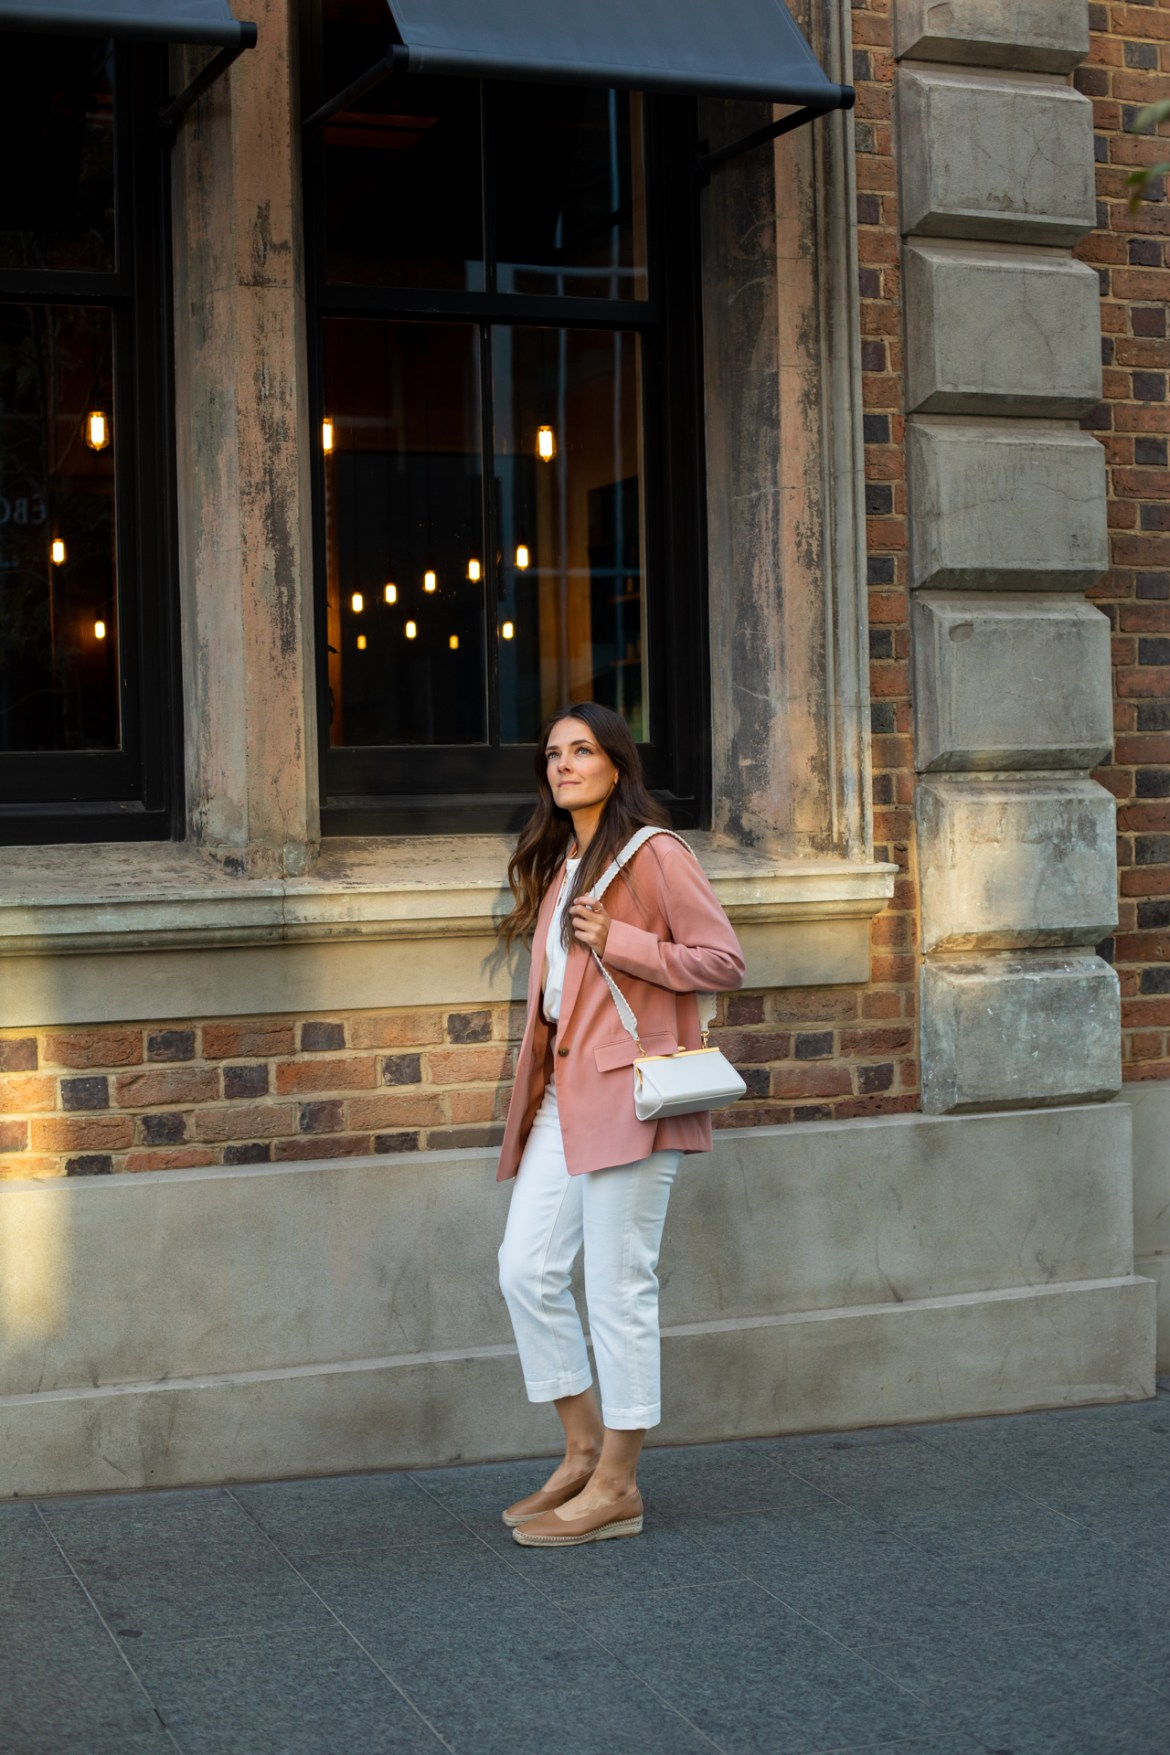 outfit idea with a white handbag and tan shoes